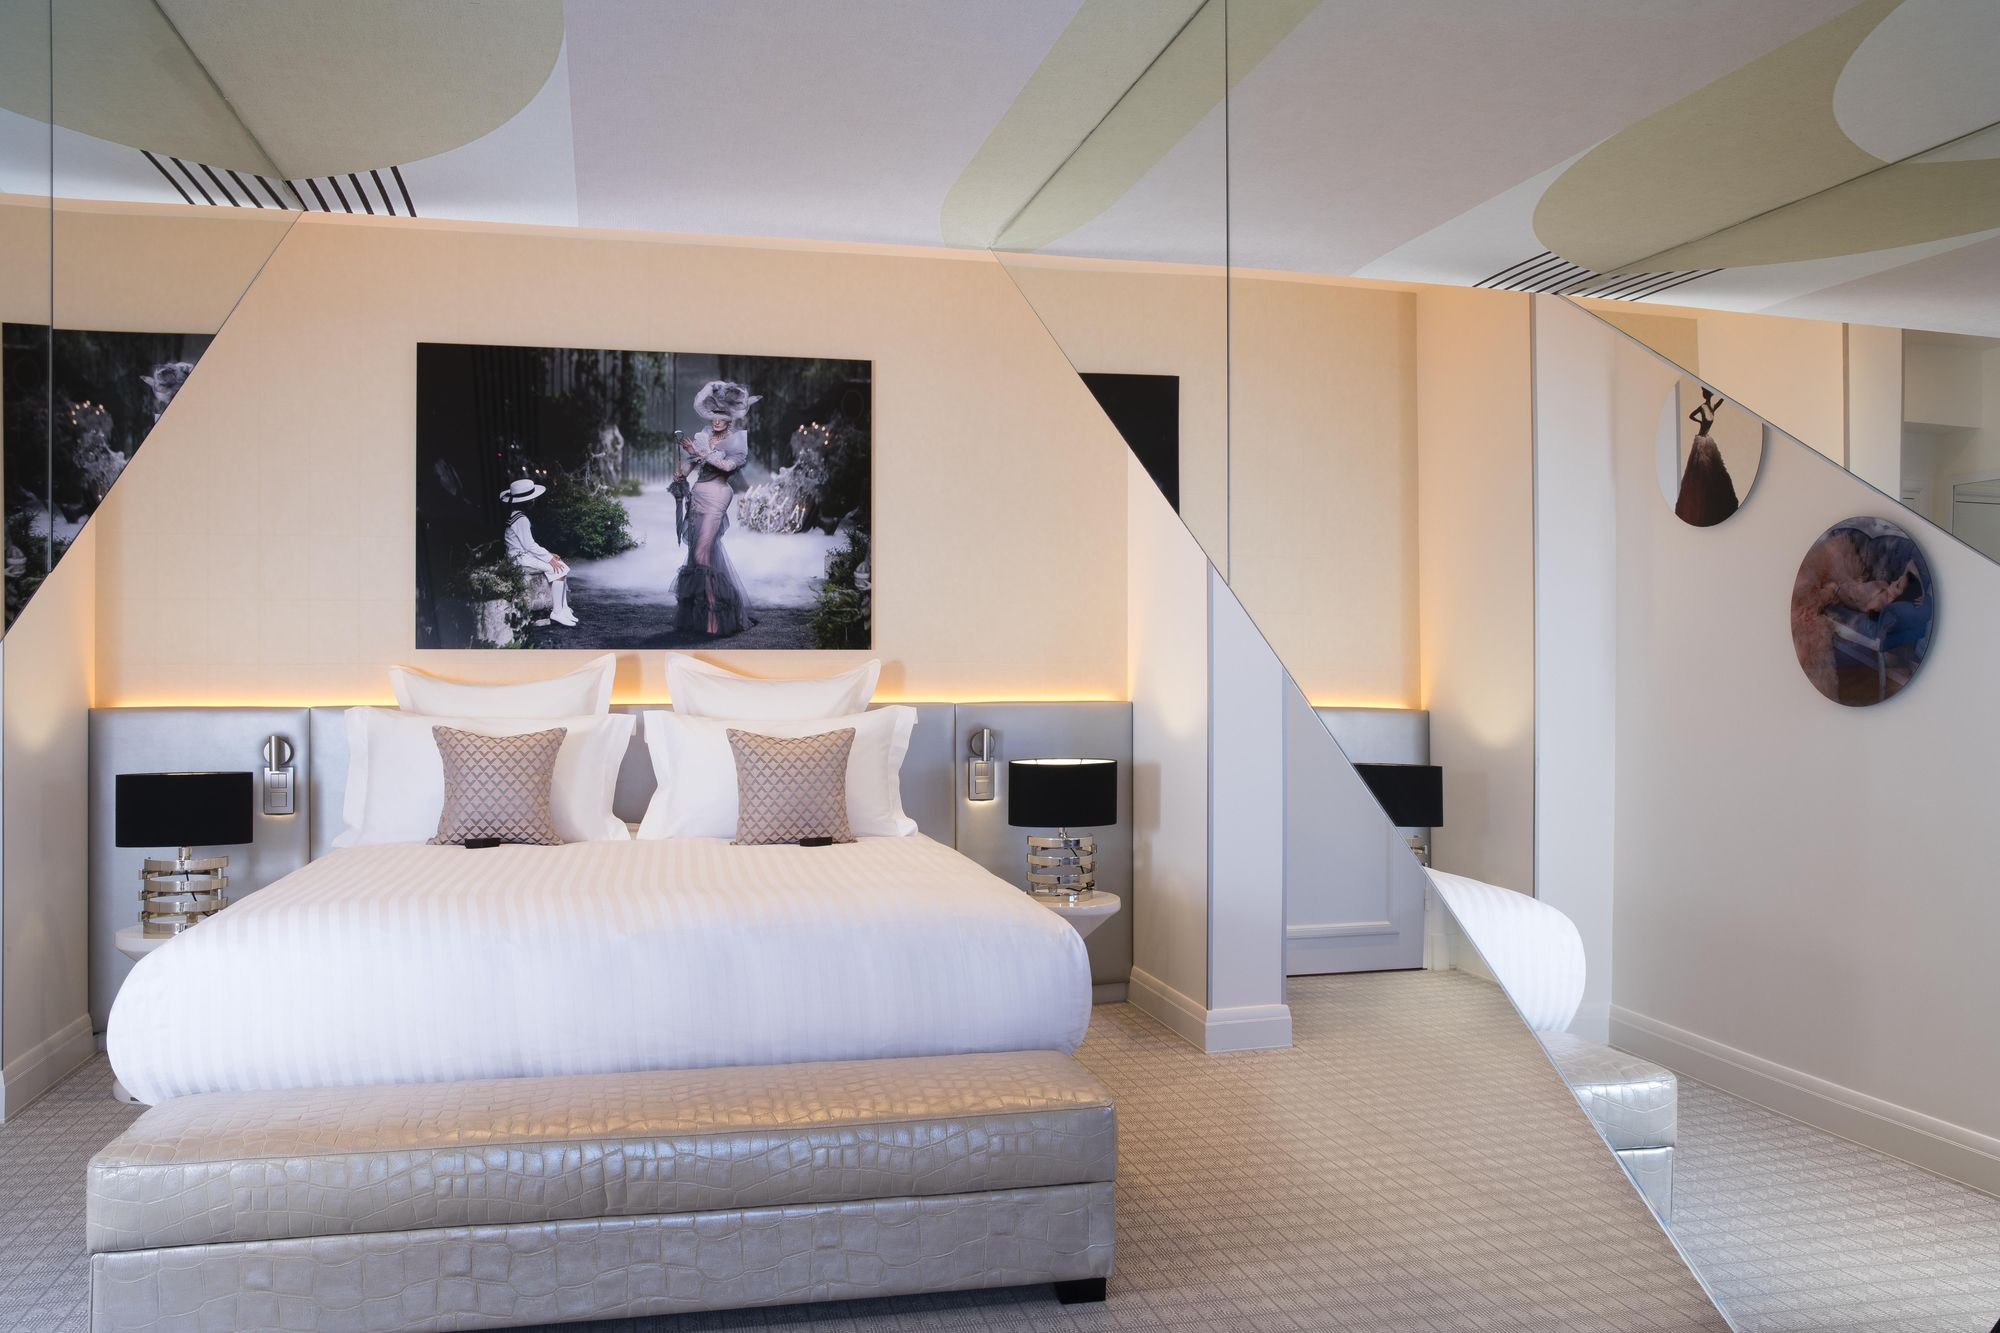 118/New Photos/Chambres/Junior Suite/JUNIOR SUITE 3.jpg